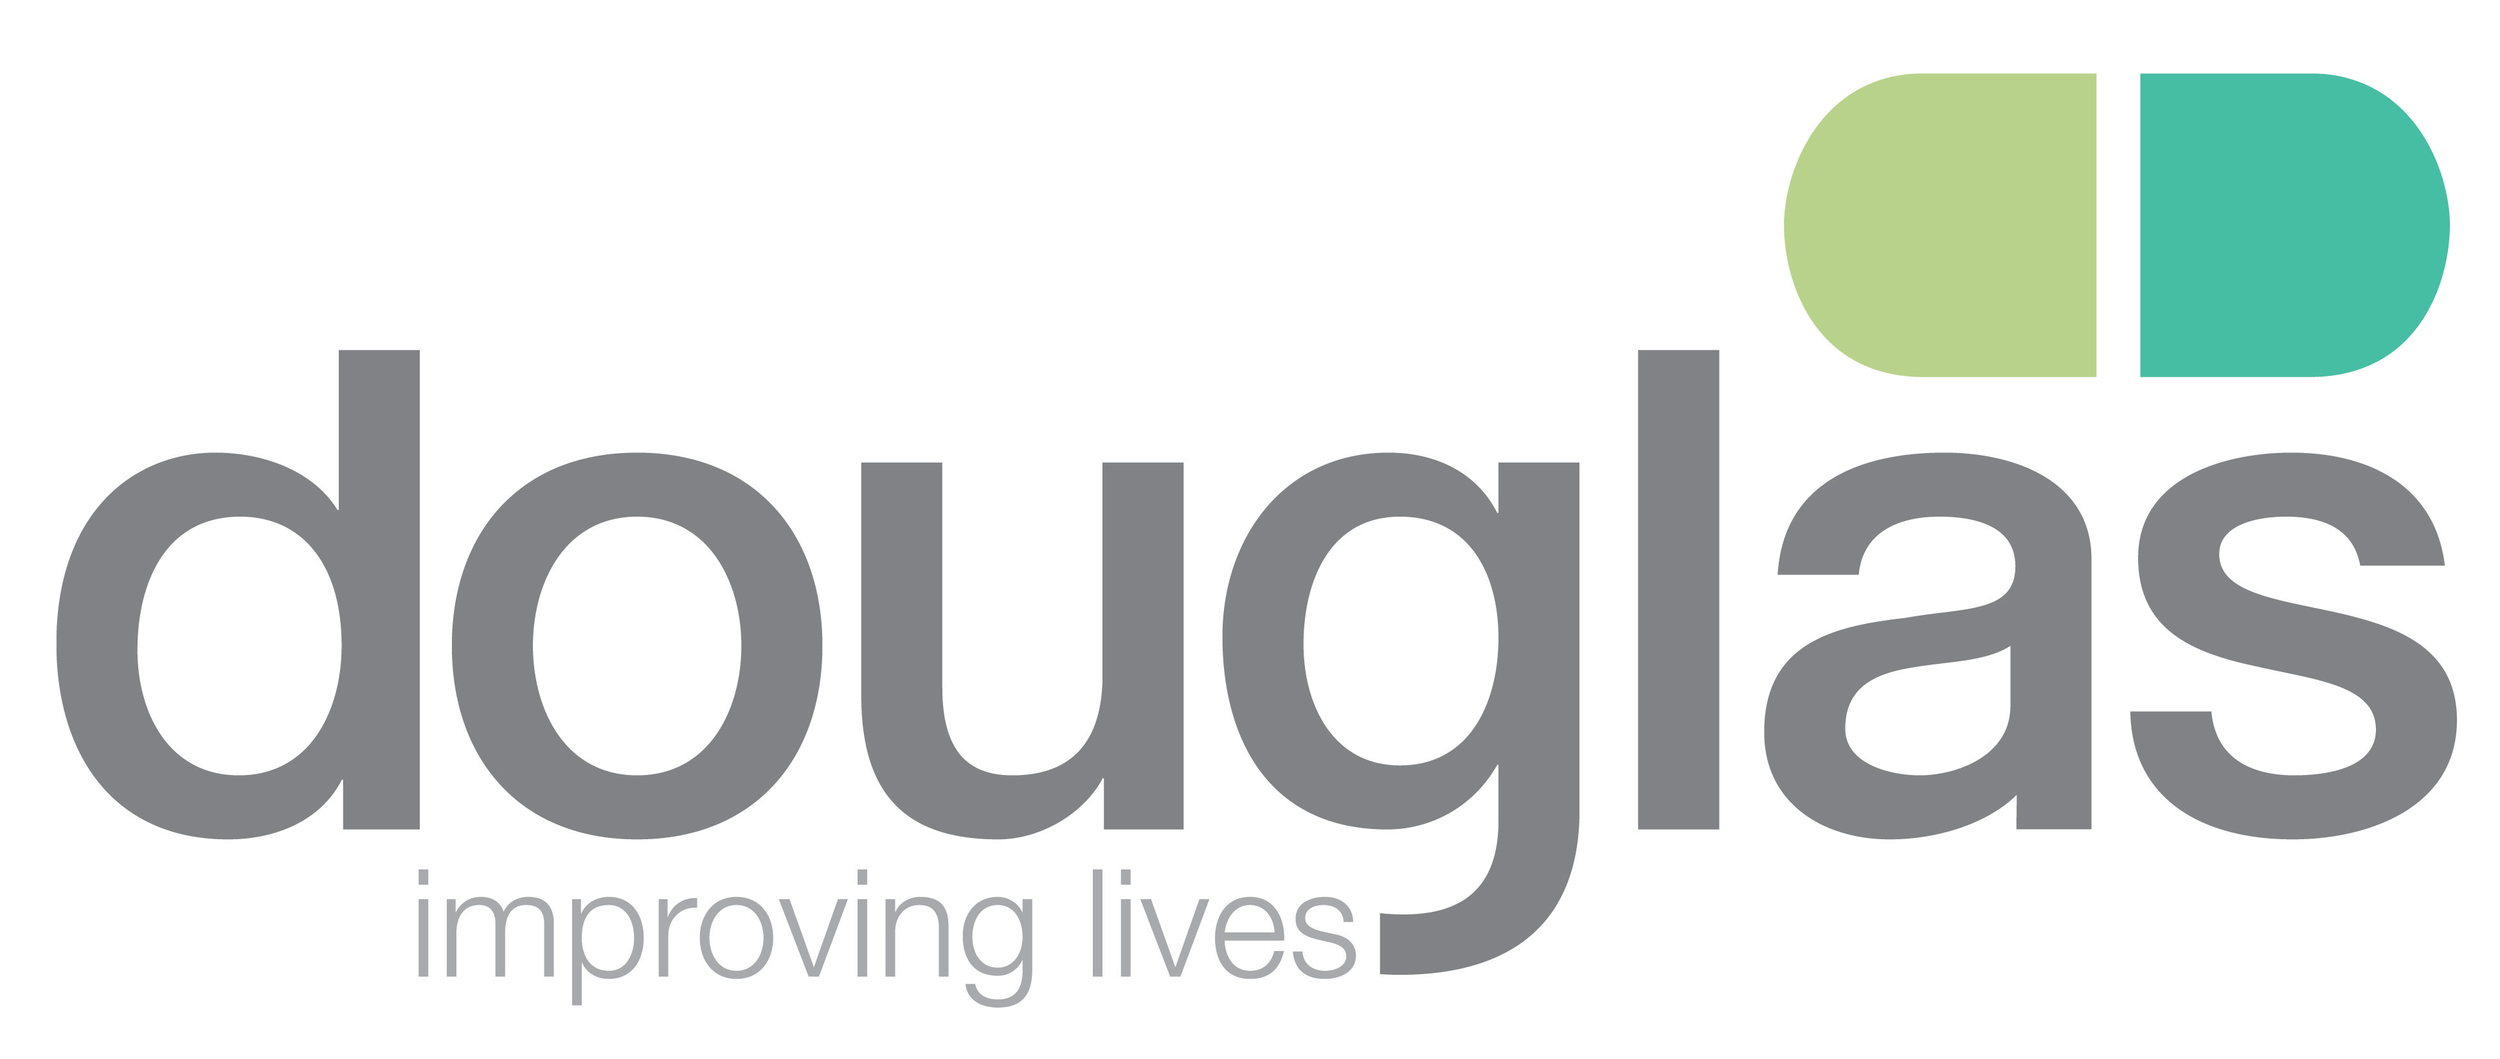 Douglas-improving-lives-A.png